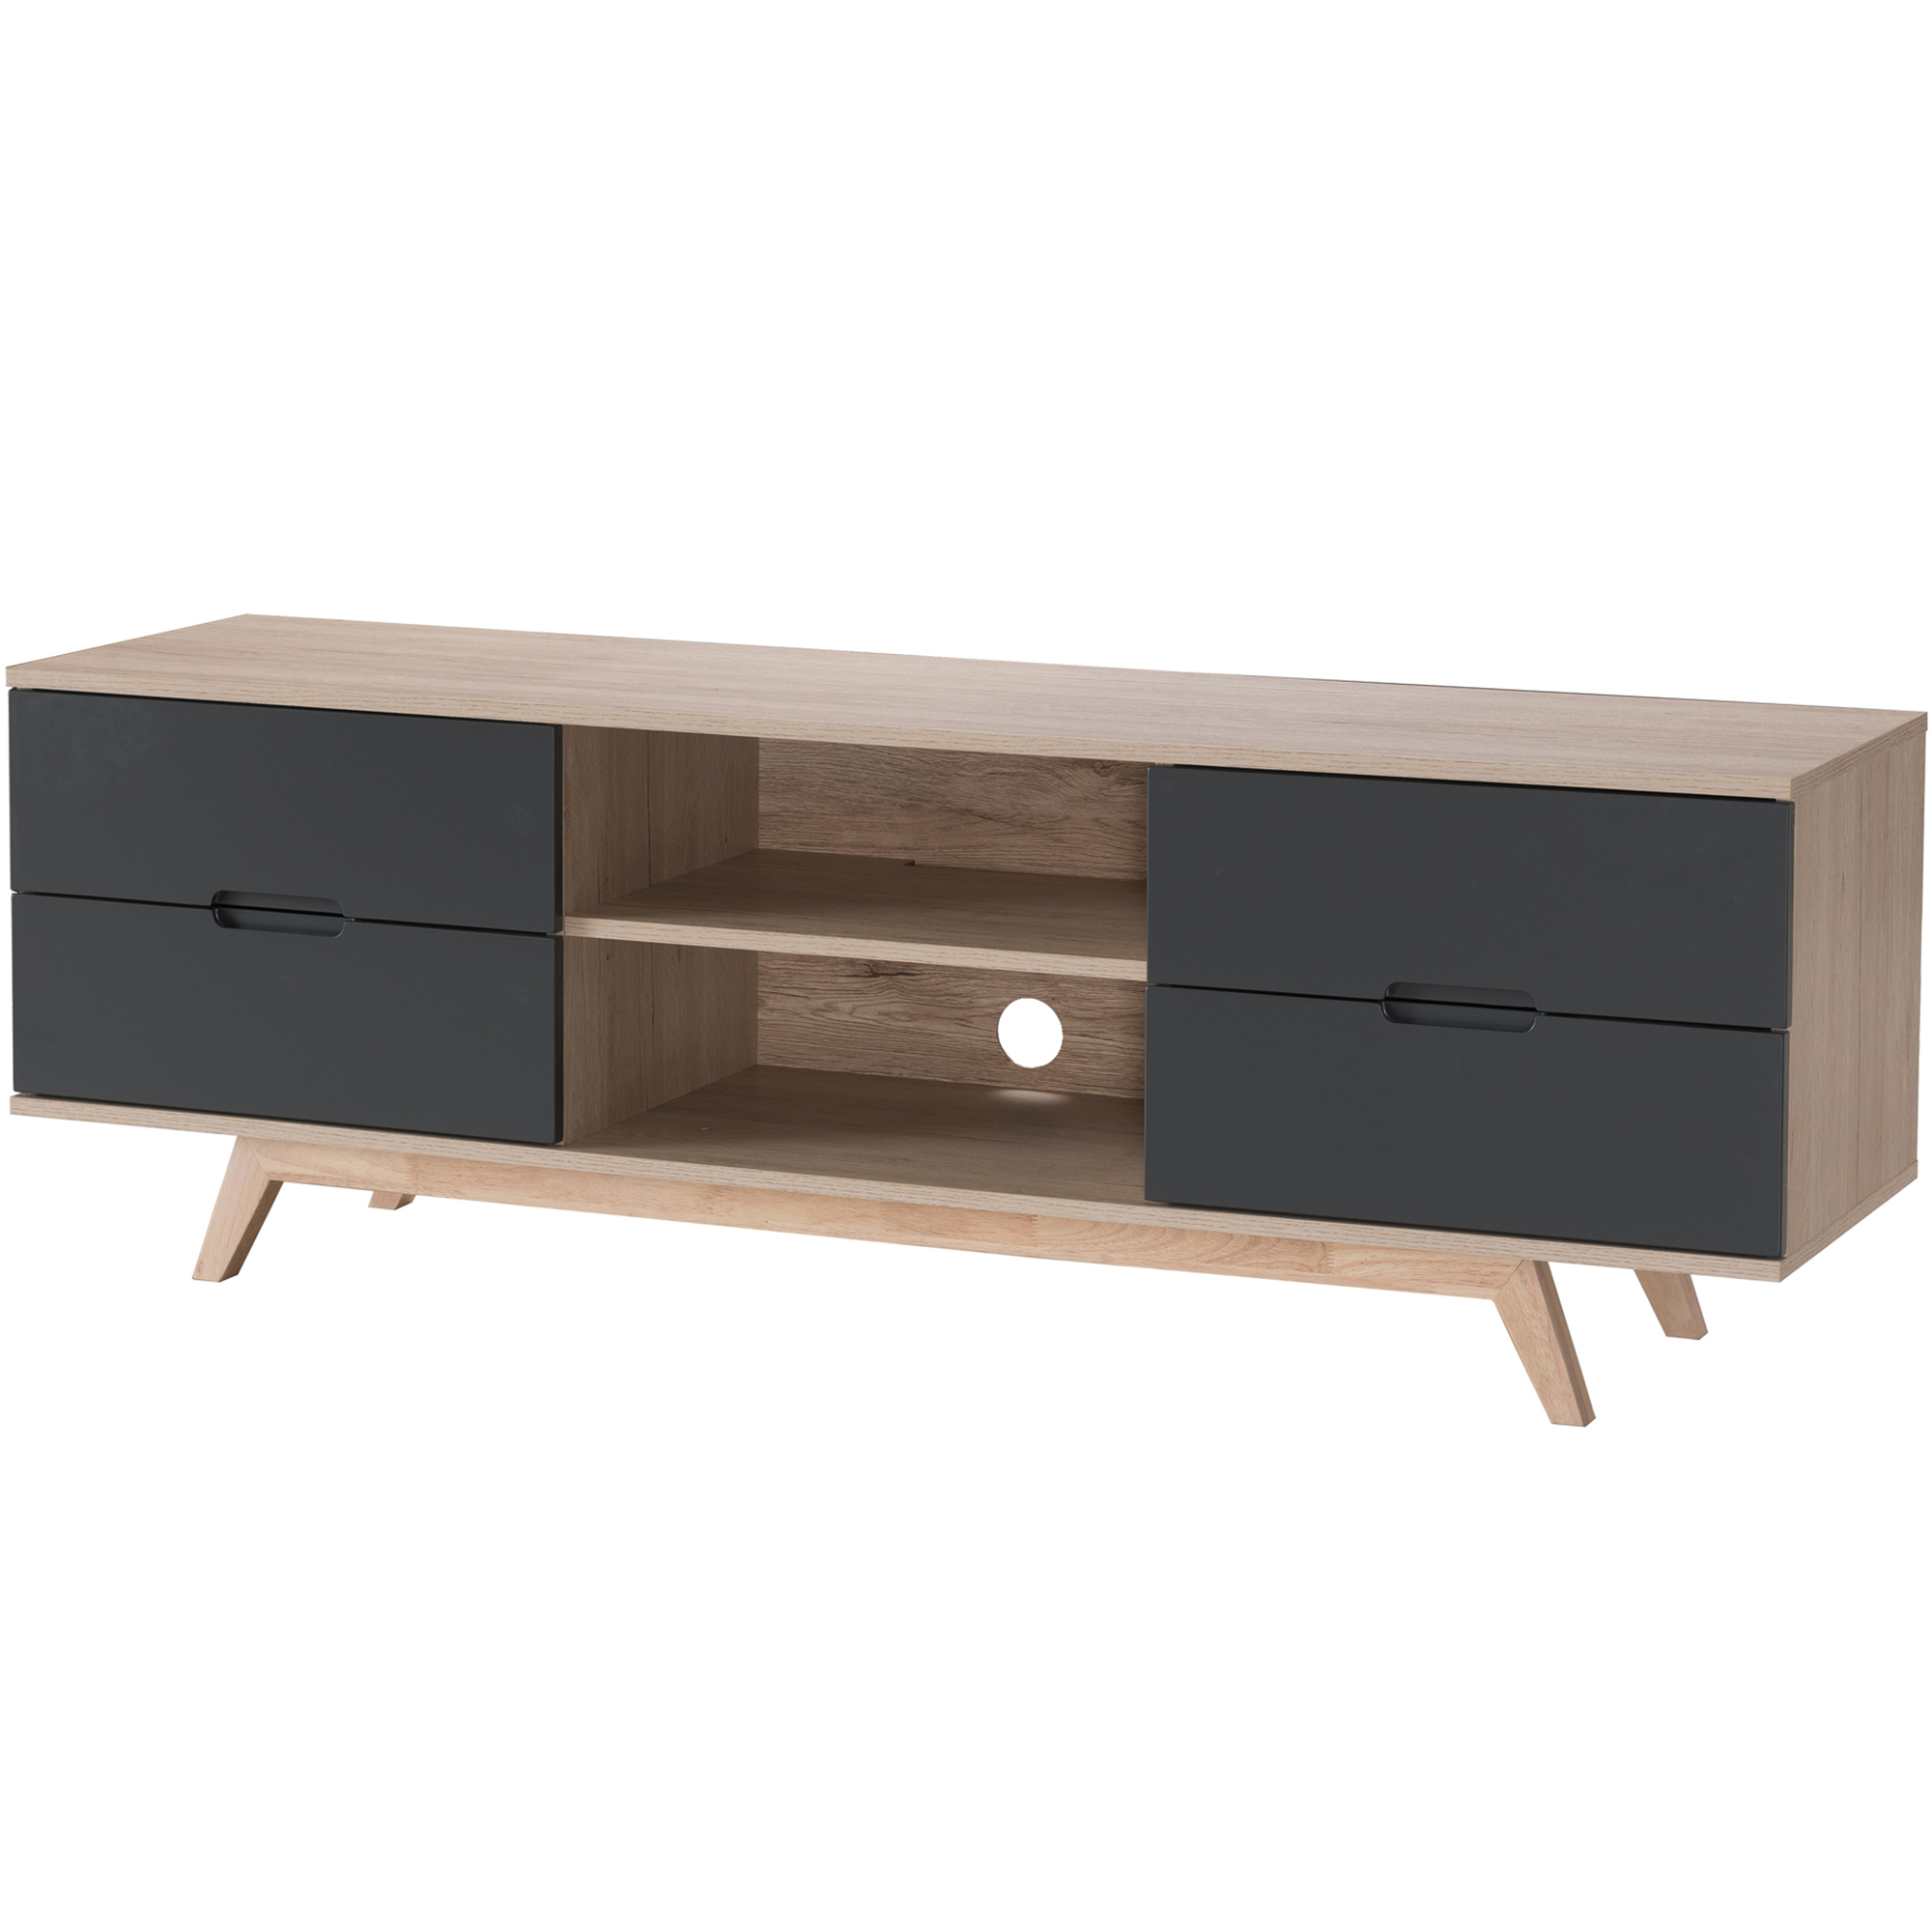 150Cm Tv Units With Regard To Well Known New 150Cm Nova European Style Entertainment Unit – Kd Furniture,tv (View 11 of 20)